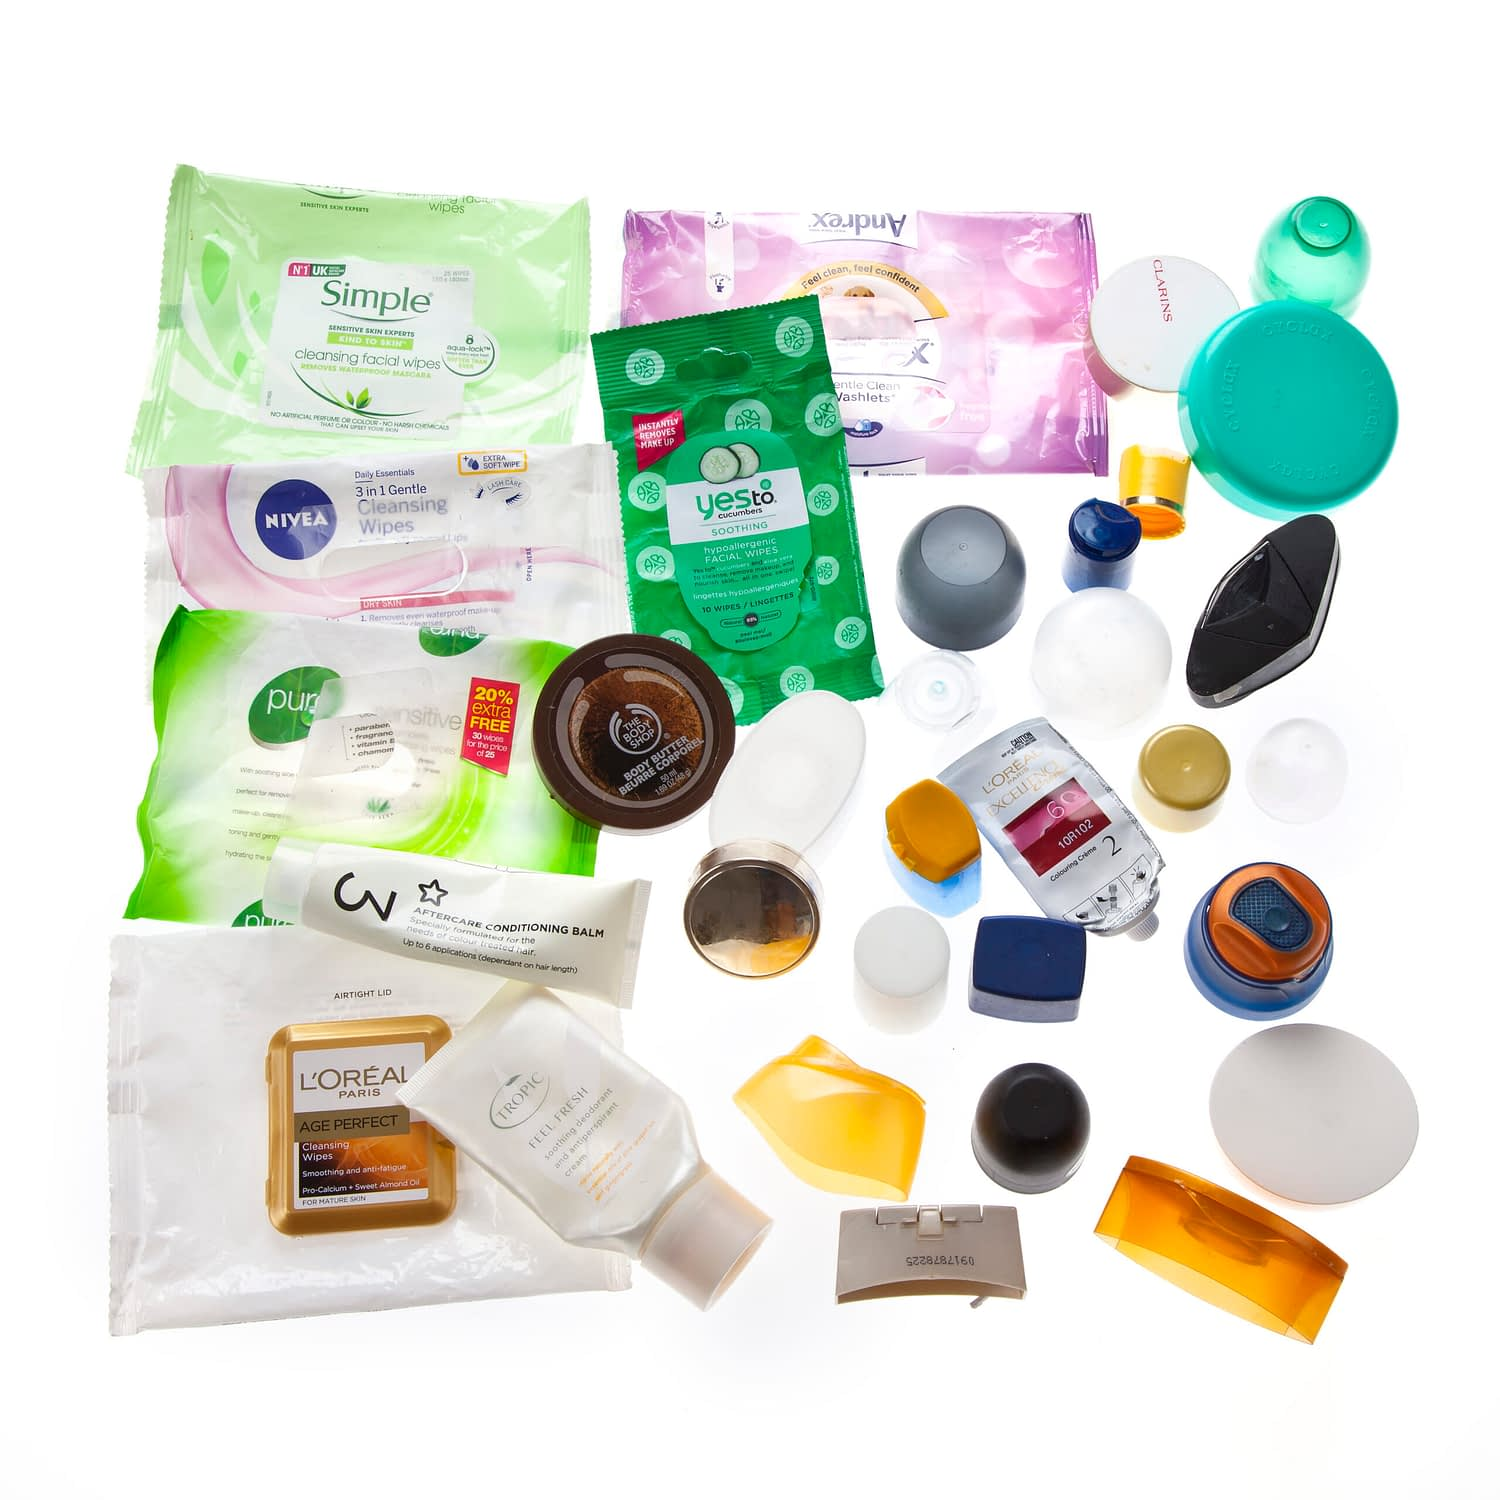 Recycling-in-lancing-cosmetics_MG_5577